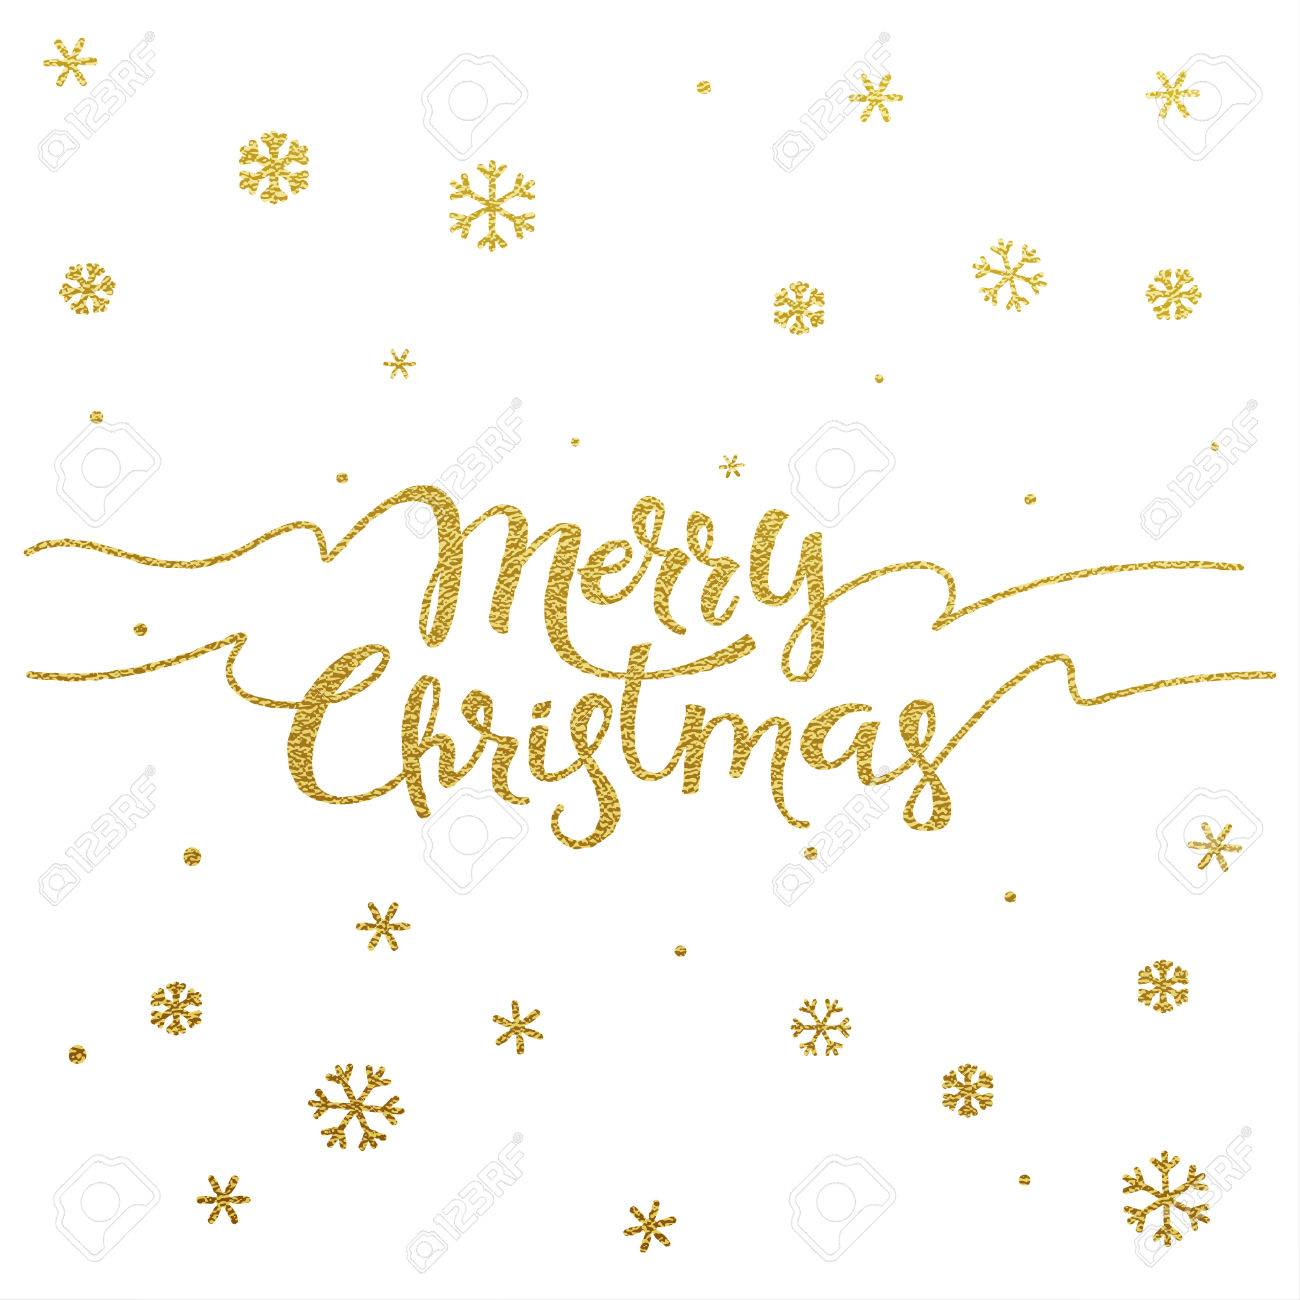 Merry Christmas Card With Design Of Gold Letters On White Background